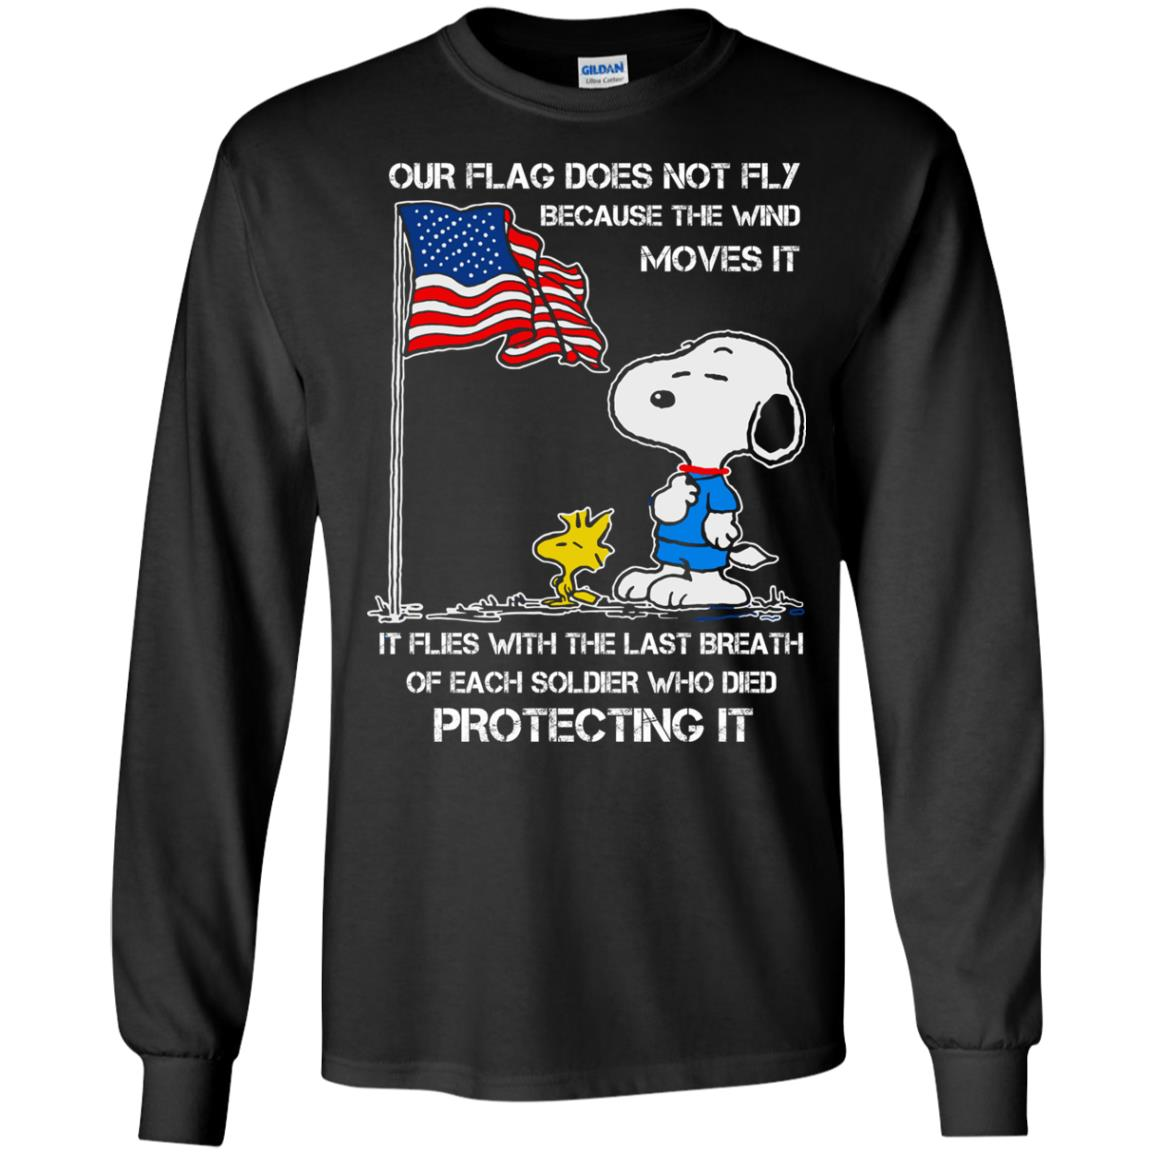 image 797 - Snoopy: Our flag does not fly because the wind moves it shirt, sweater